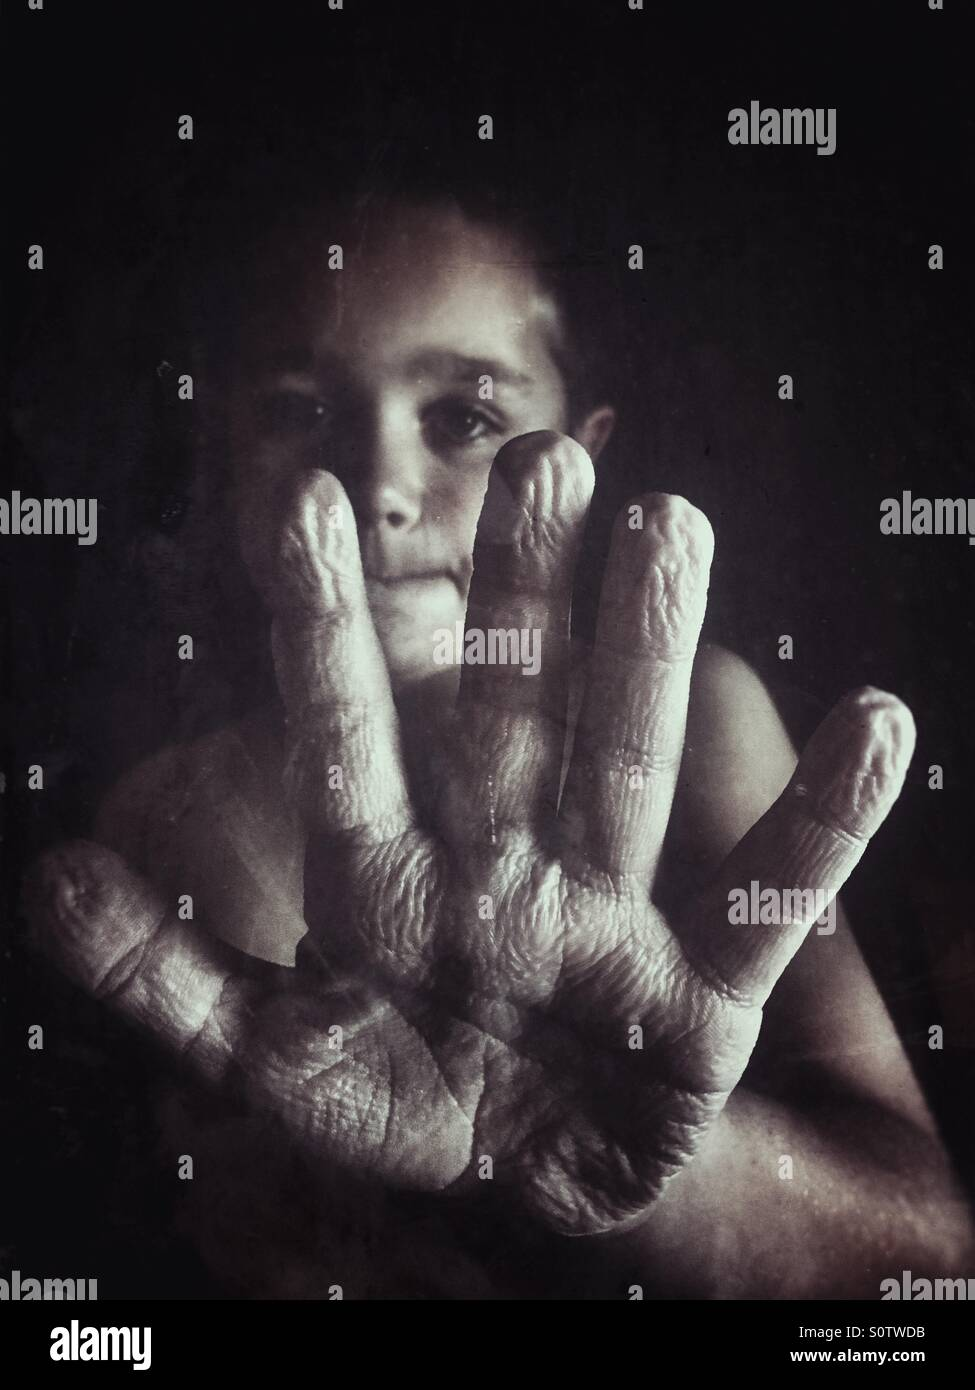 Boy showing wrinkled hand from taking a long shower - Stock Image